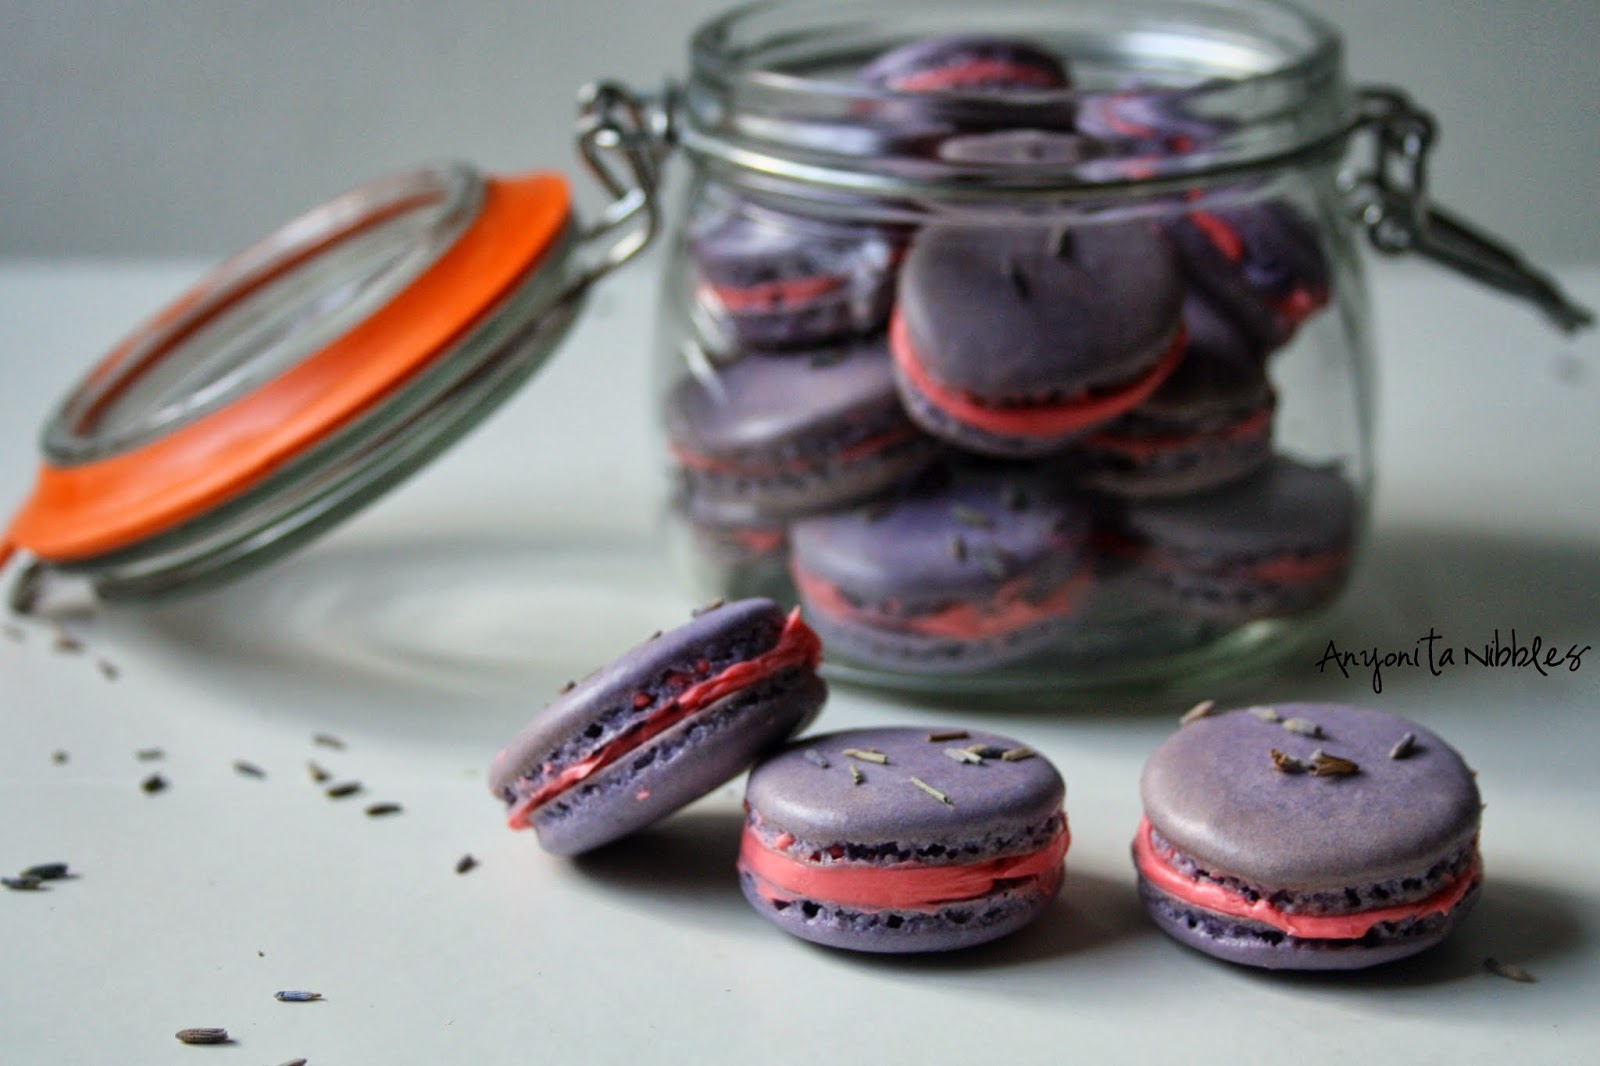 Three lavender and rose #French #macarons ready to eat from @anyonita